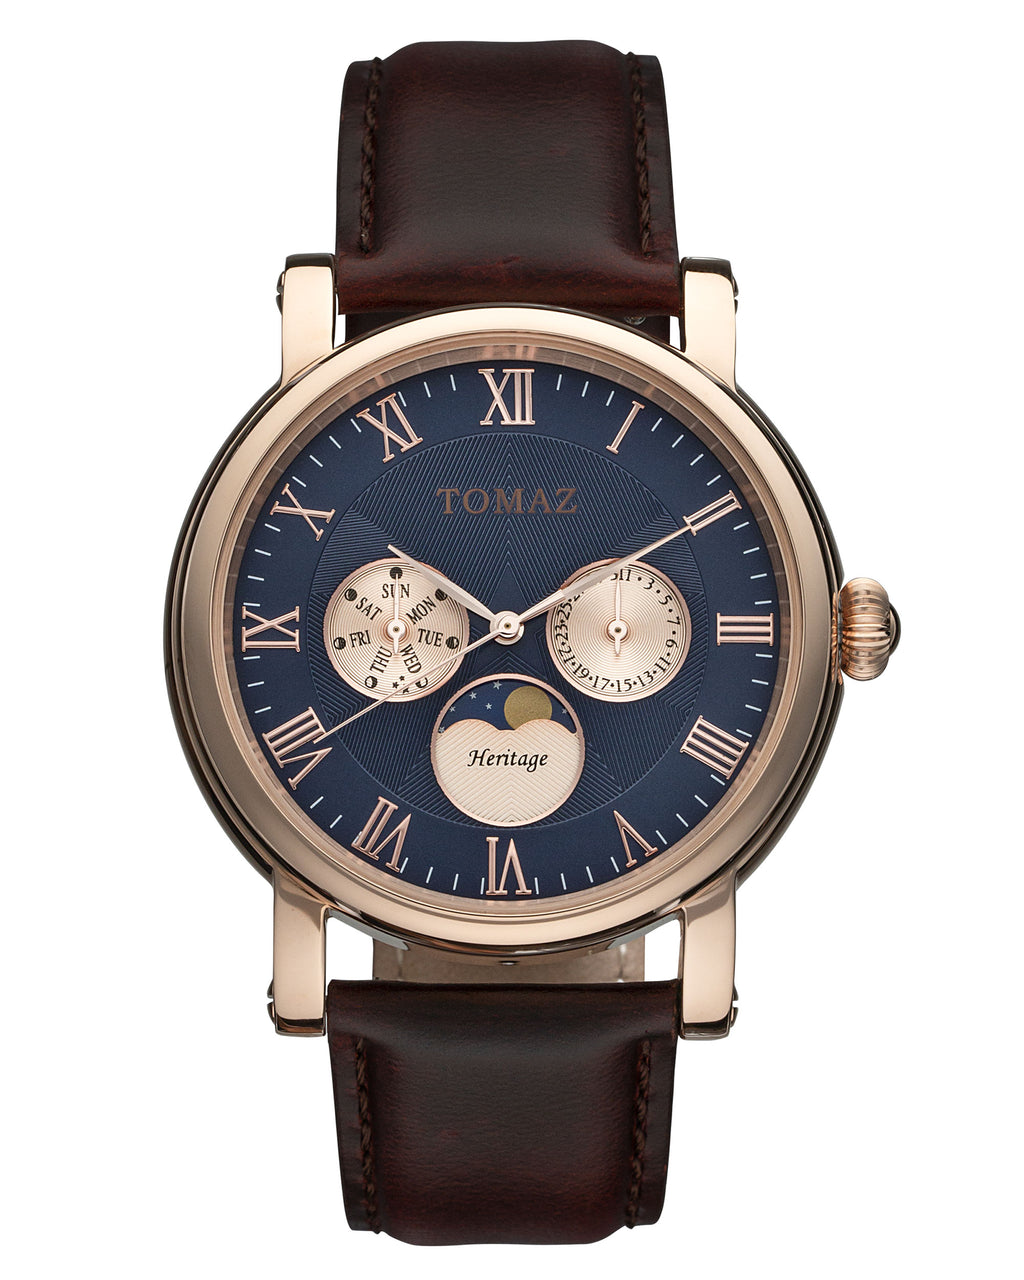 Tomaz Mens Watch TQ007 (Rose Gold/Navy)